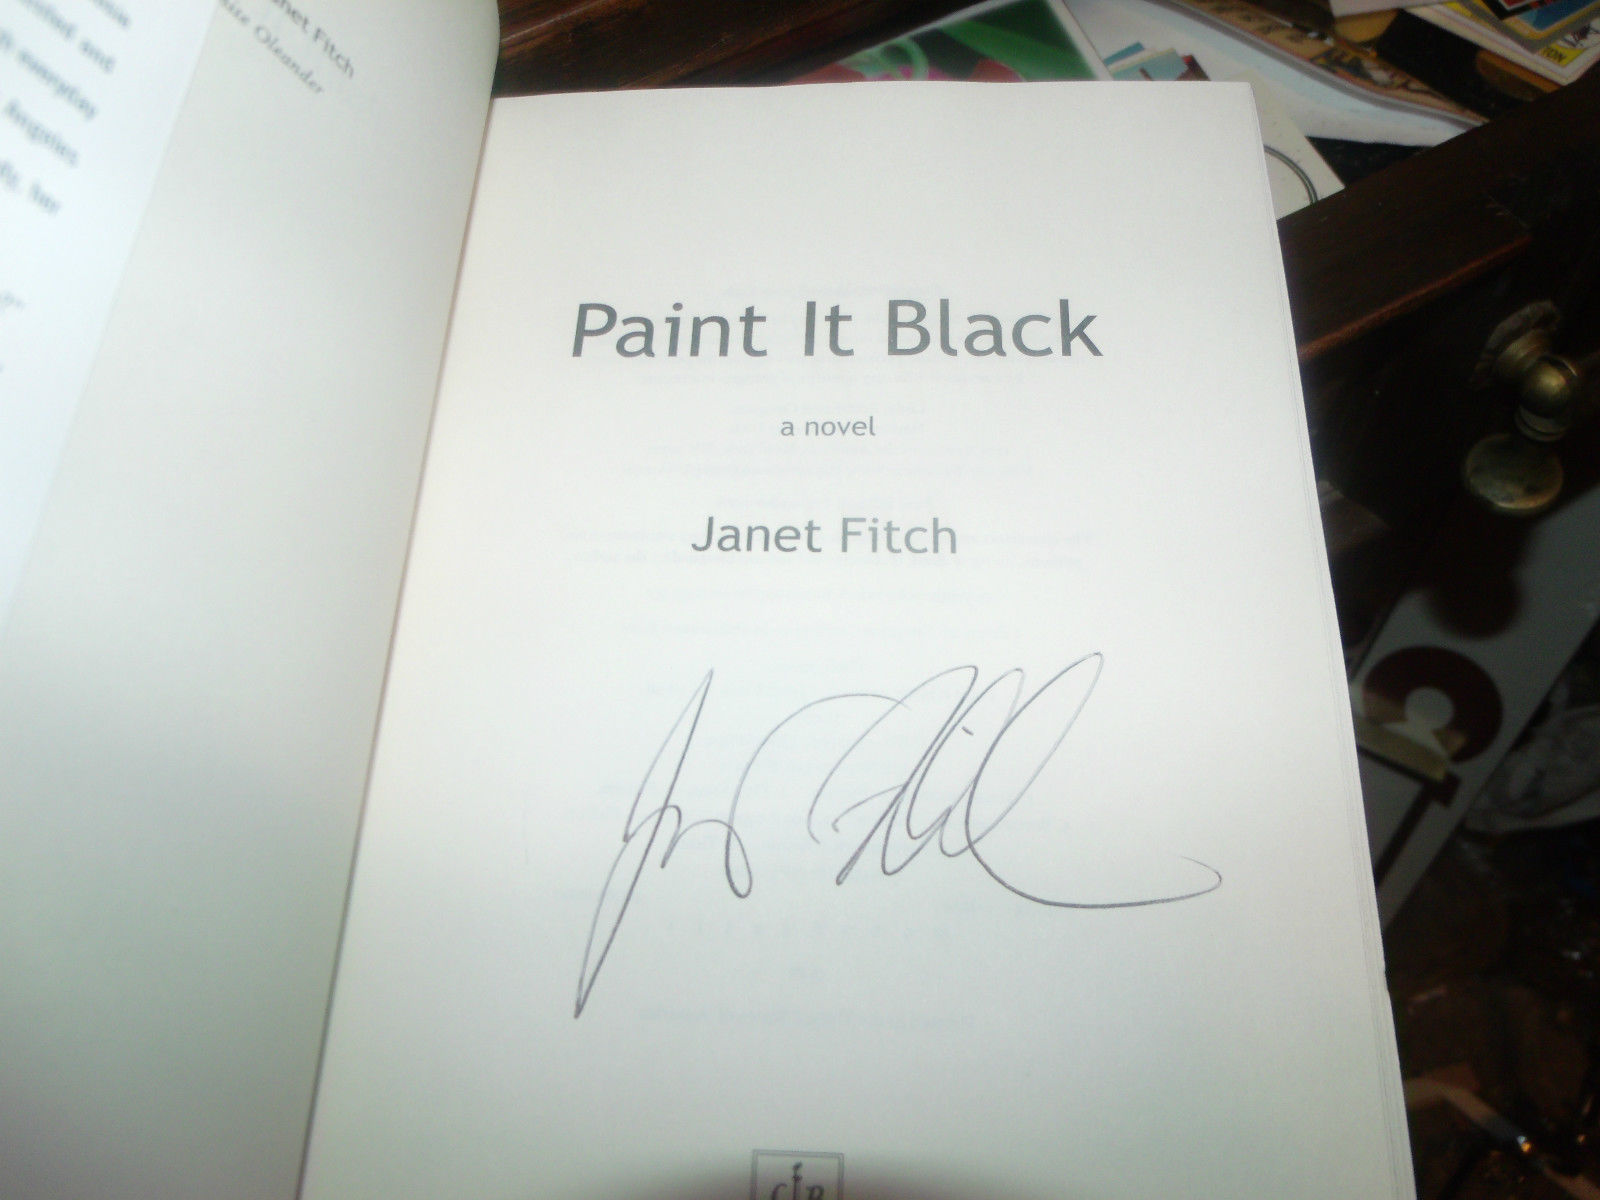 a literary analysis of paint it black by janet fitch Buy the paperback book paint it black by janet fitch at indigoca, canada's largest bookstore + get free shipping on fiction and literature books over $25.